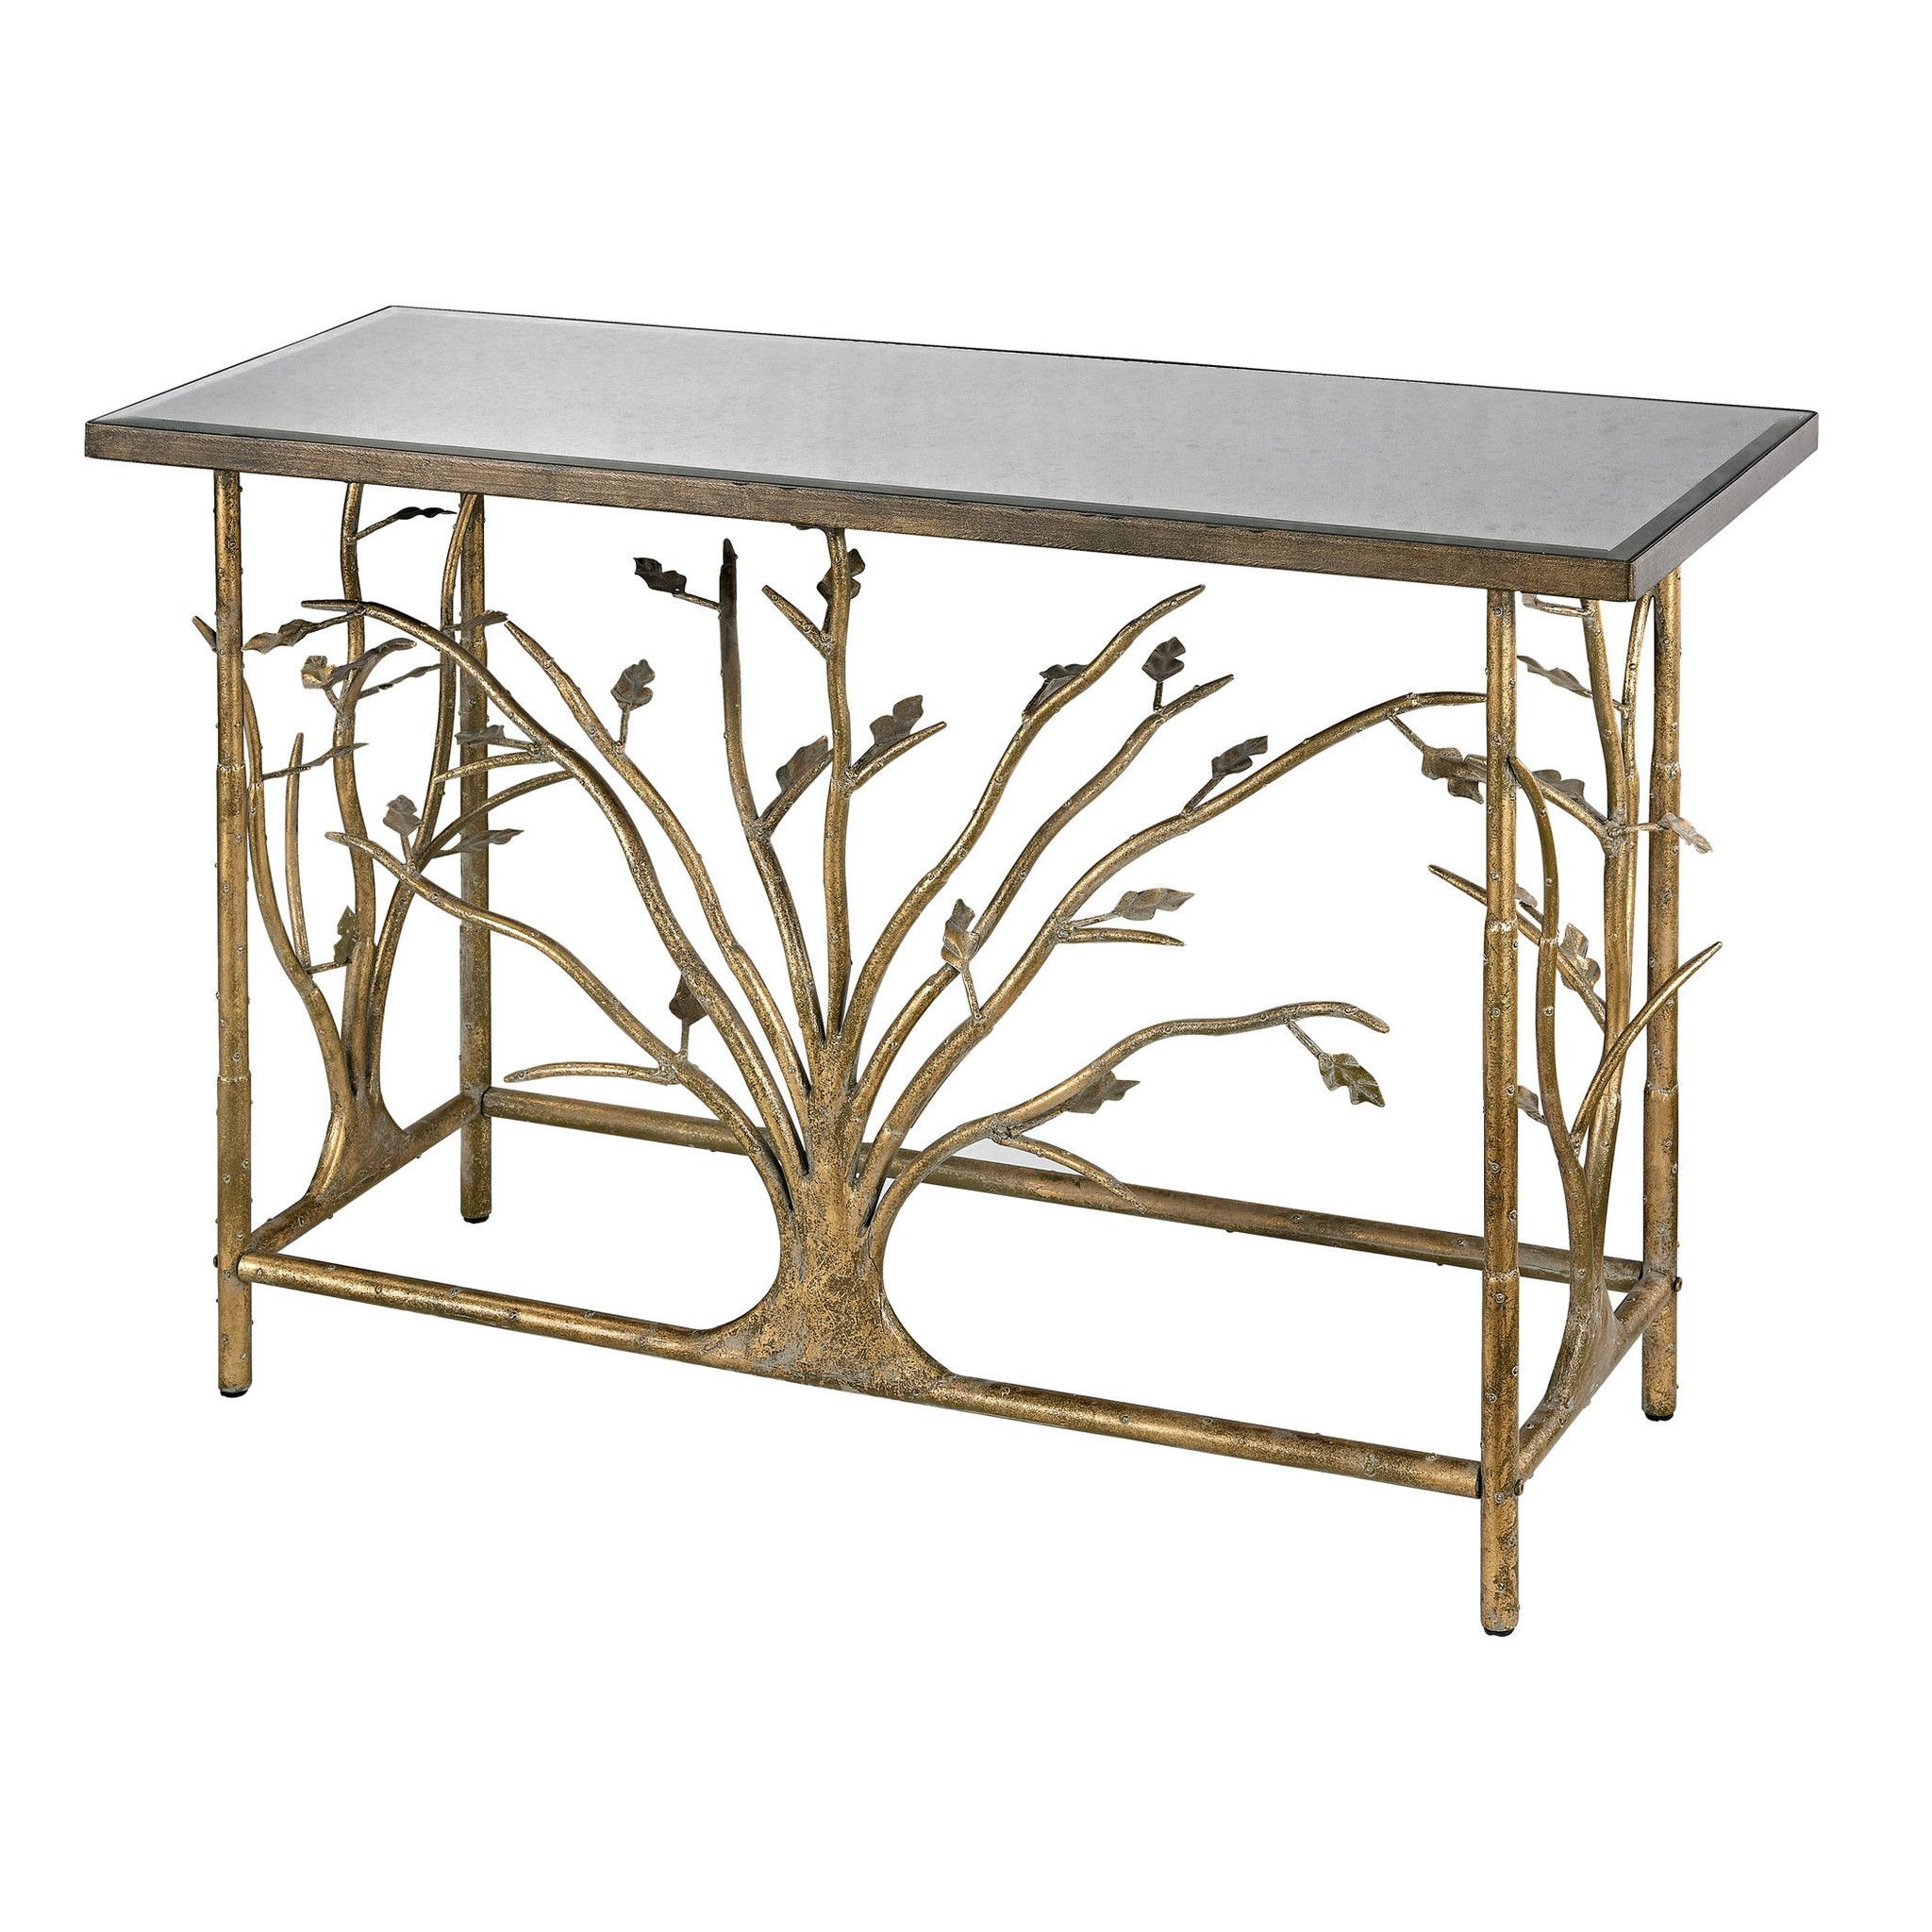 gold leafed metal branch console table with antique mirrored top glass accent drawer main street small gas grill aluminum nic tables black bedside lamps wireless lawn and garden